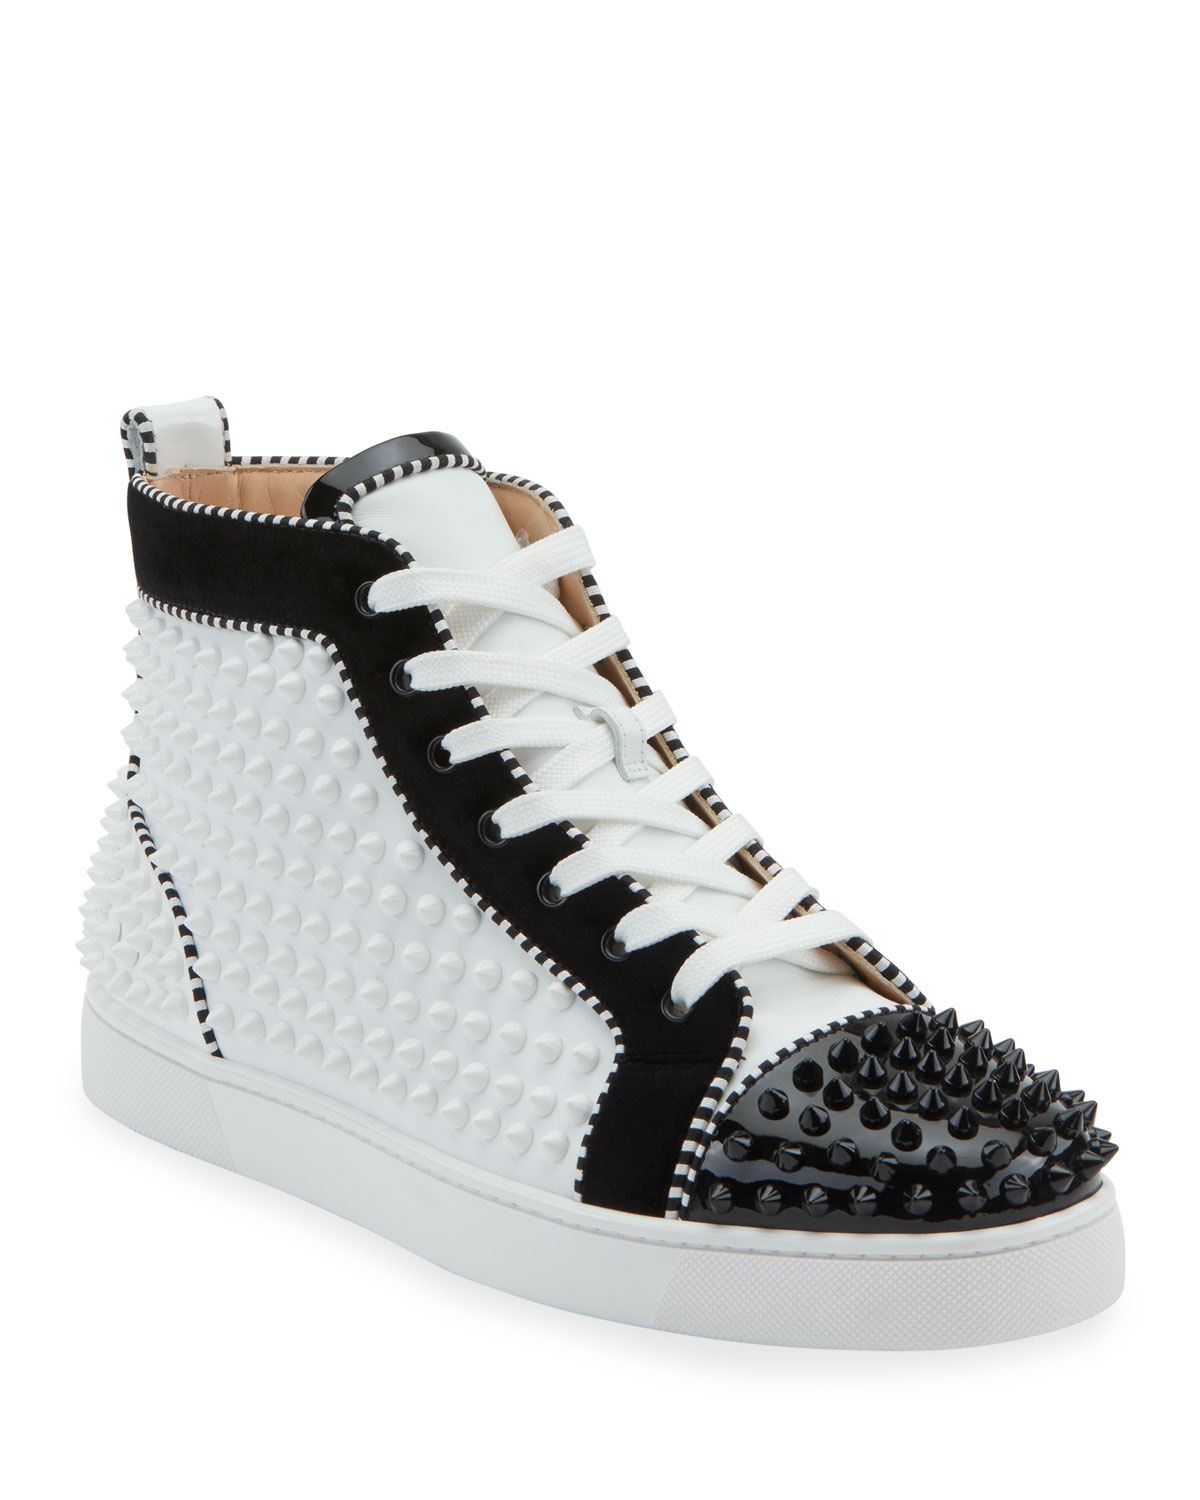 930fa05305d Men's Louis Spikes 2 Leather High-Top Sneaker